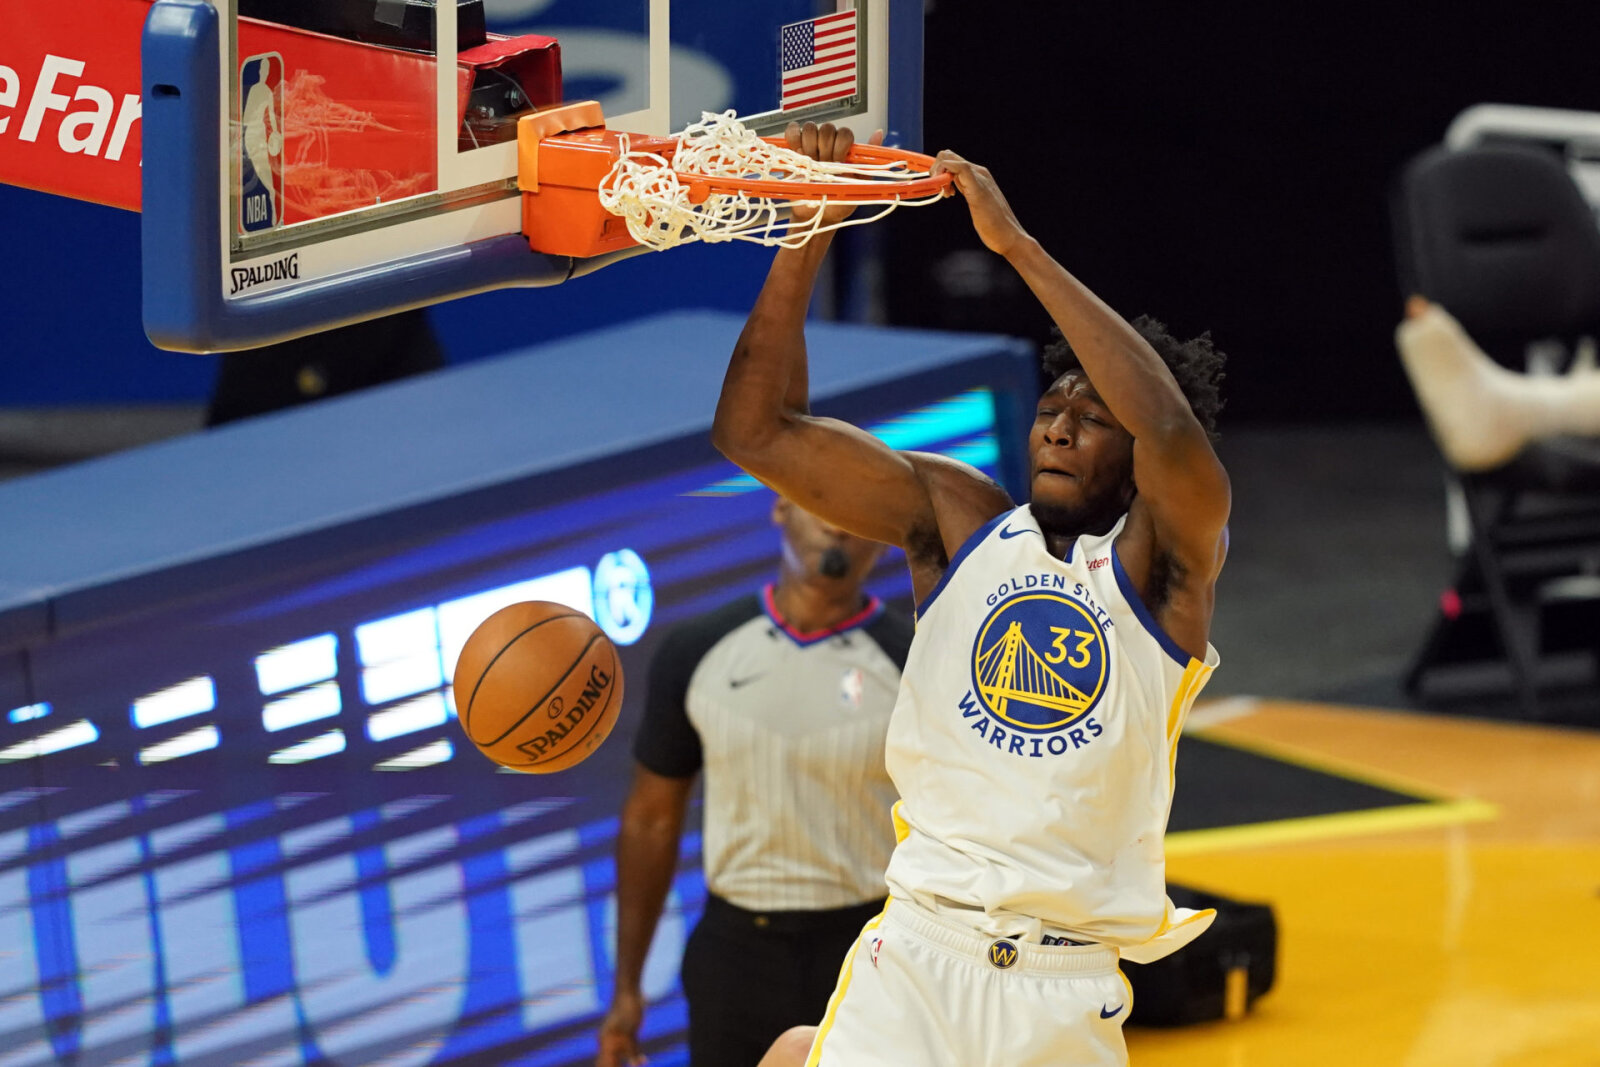 Warriors Owner Compares James Wiseman's Slow Start to Kobe Bryant and Kevin Garnett